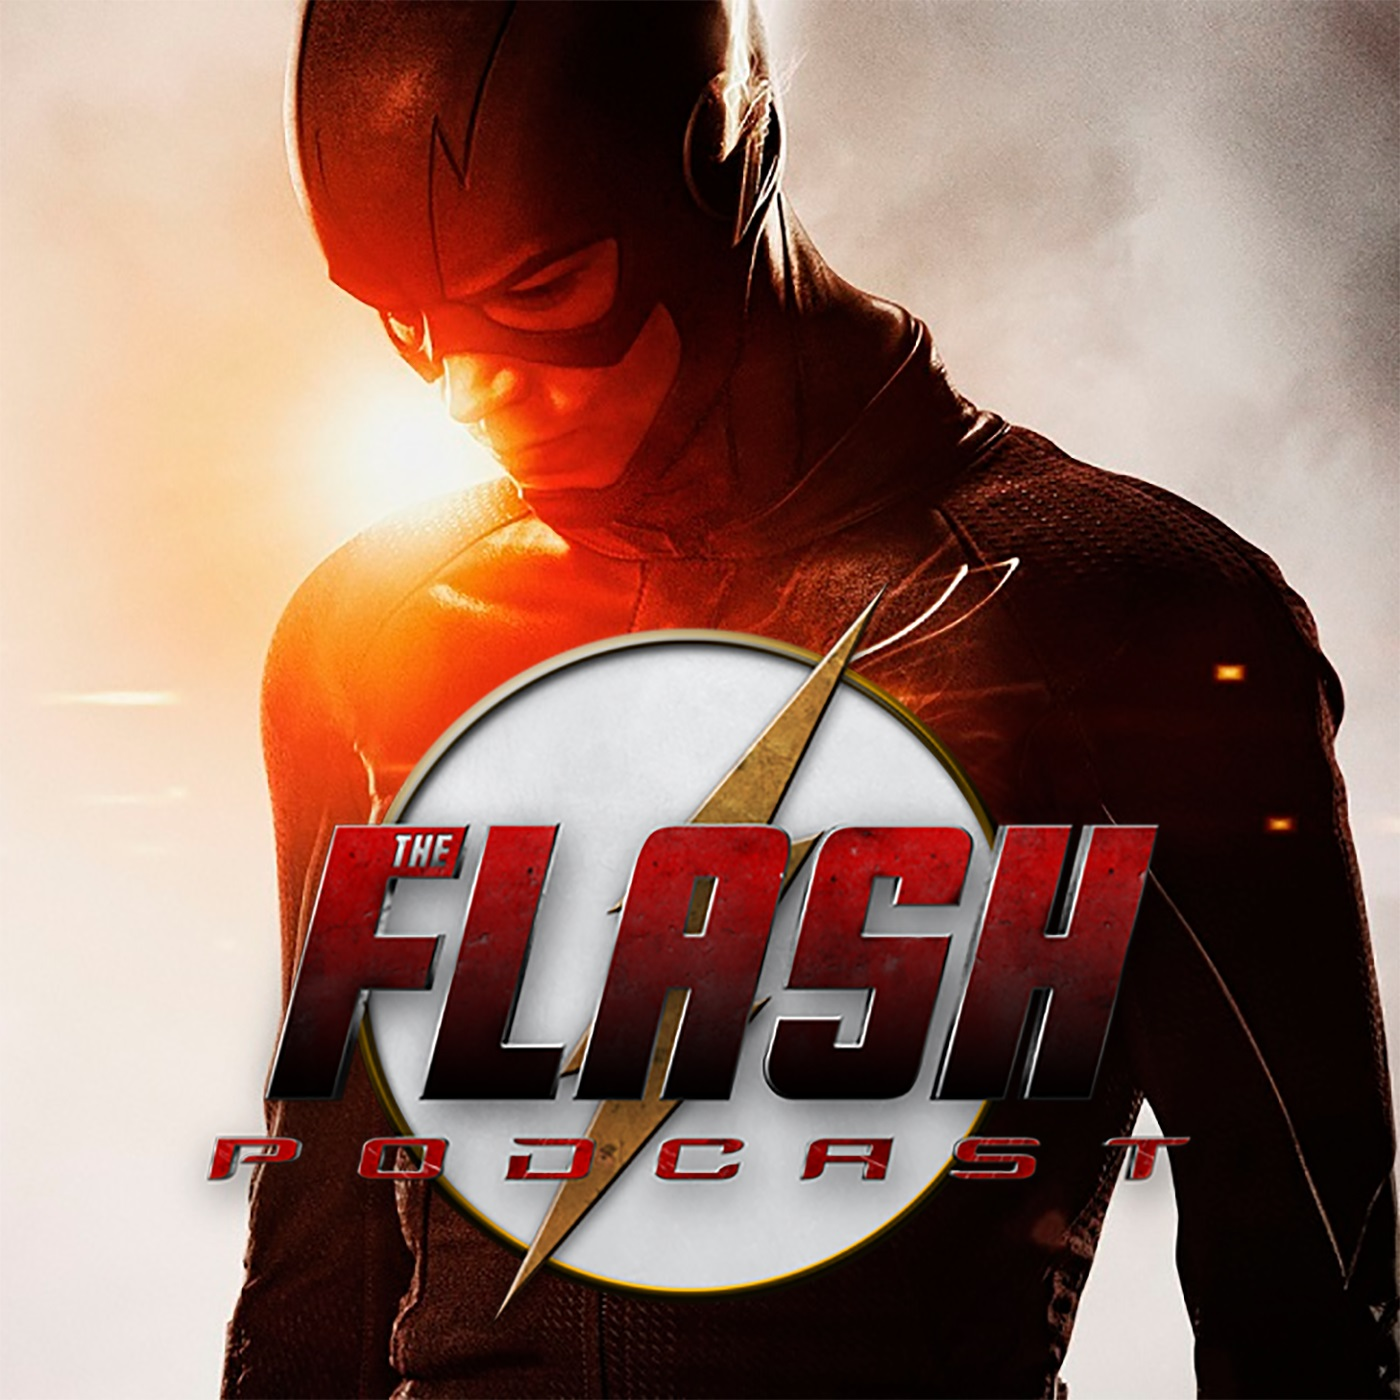 The Flash Podcast Season 2.5 - Episode 12: Heroes & Villains Fan Fest San Jose Recap